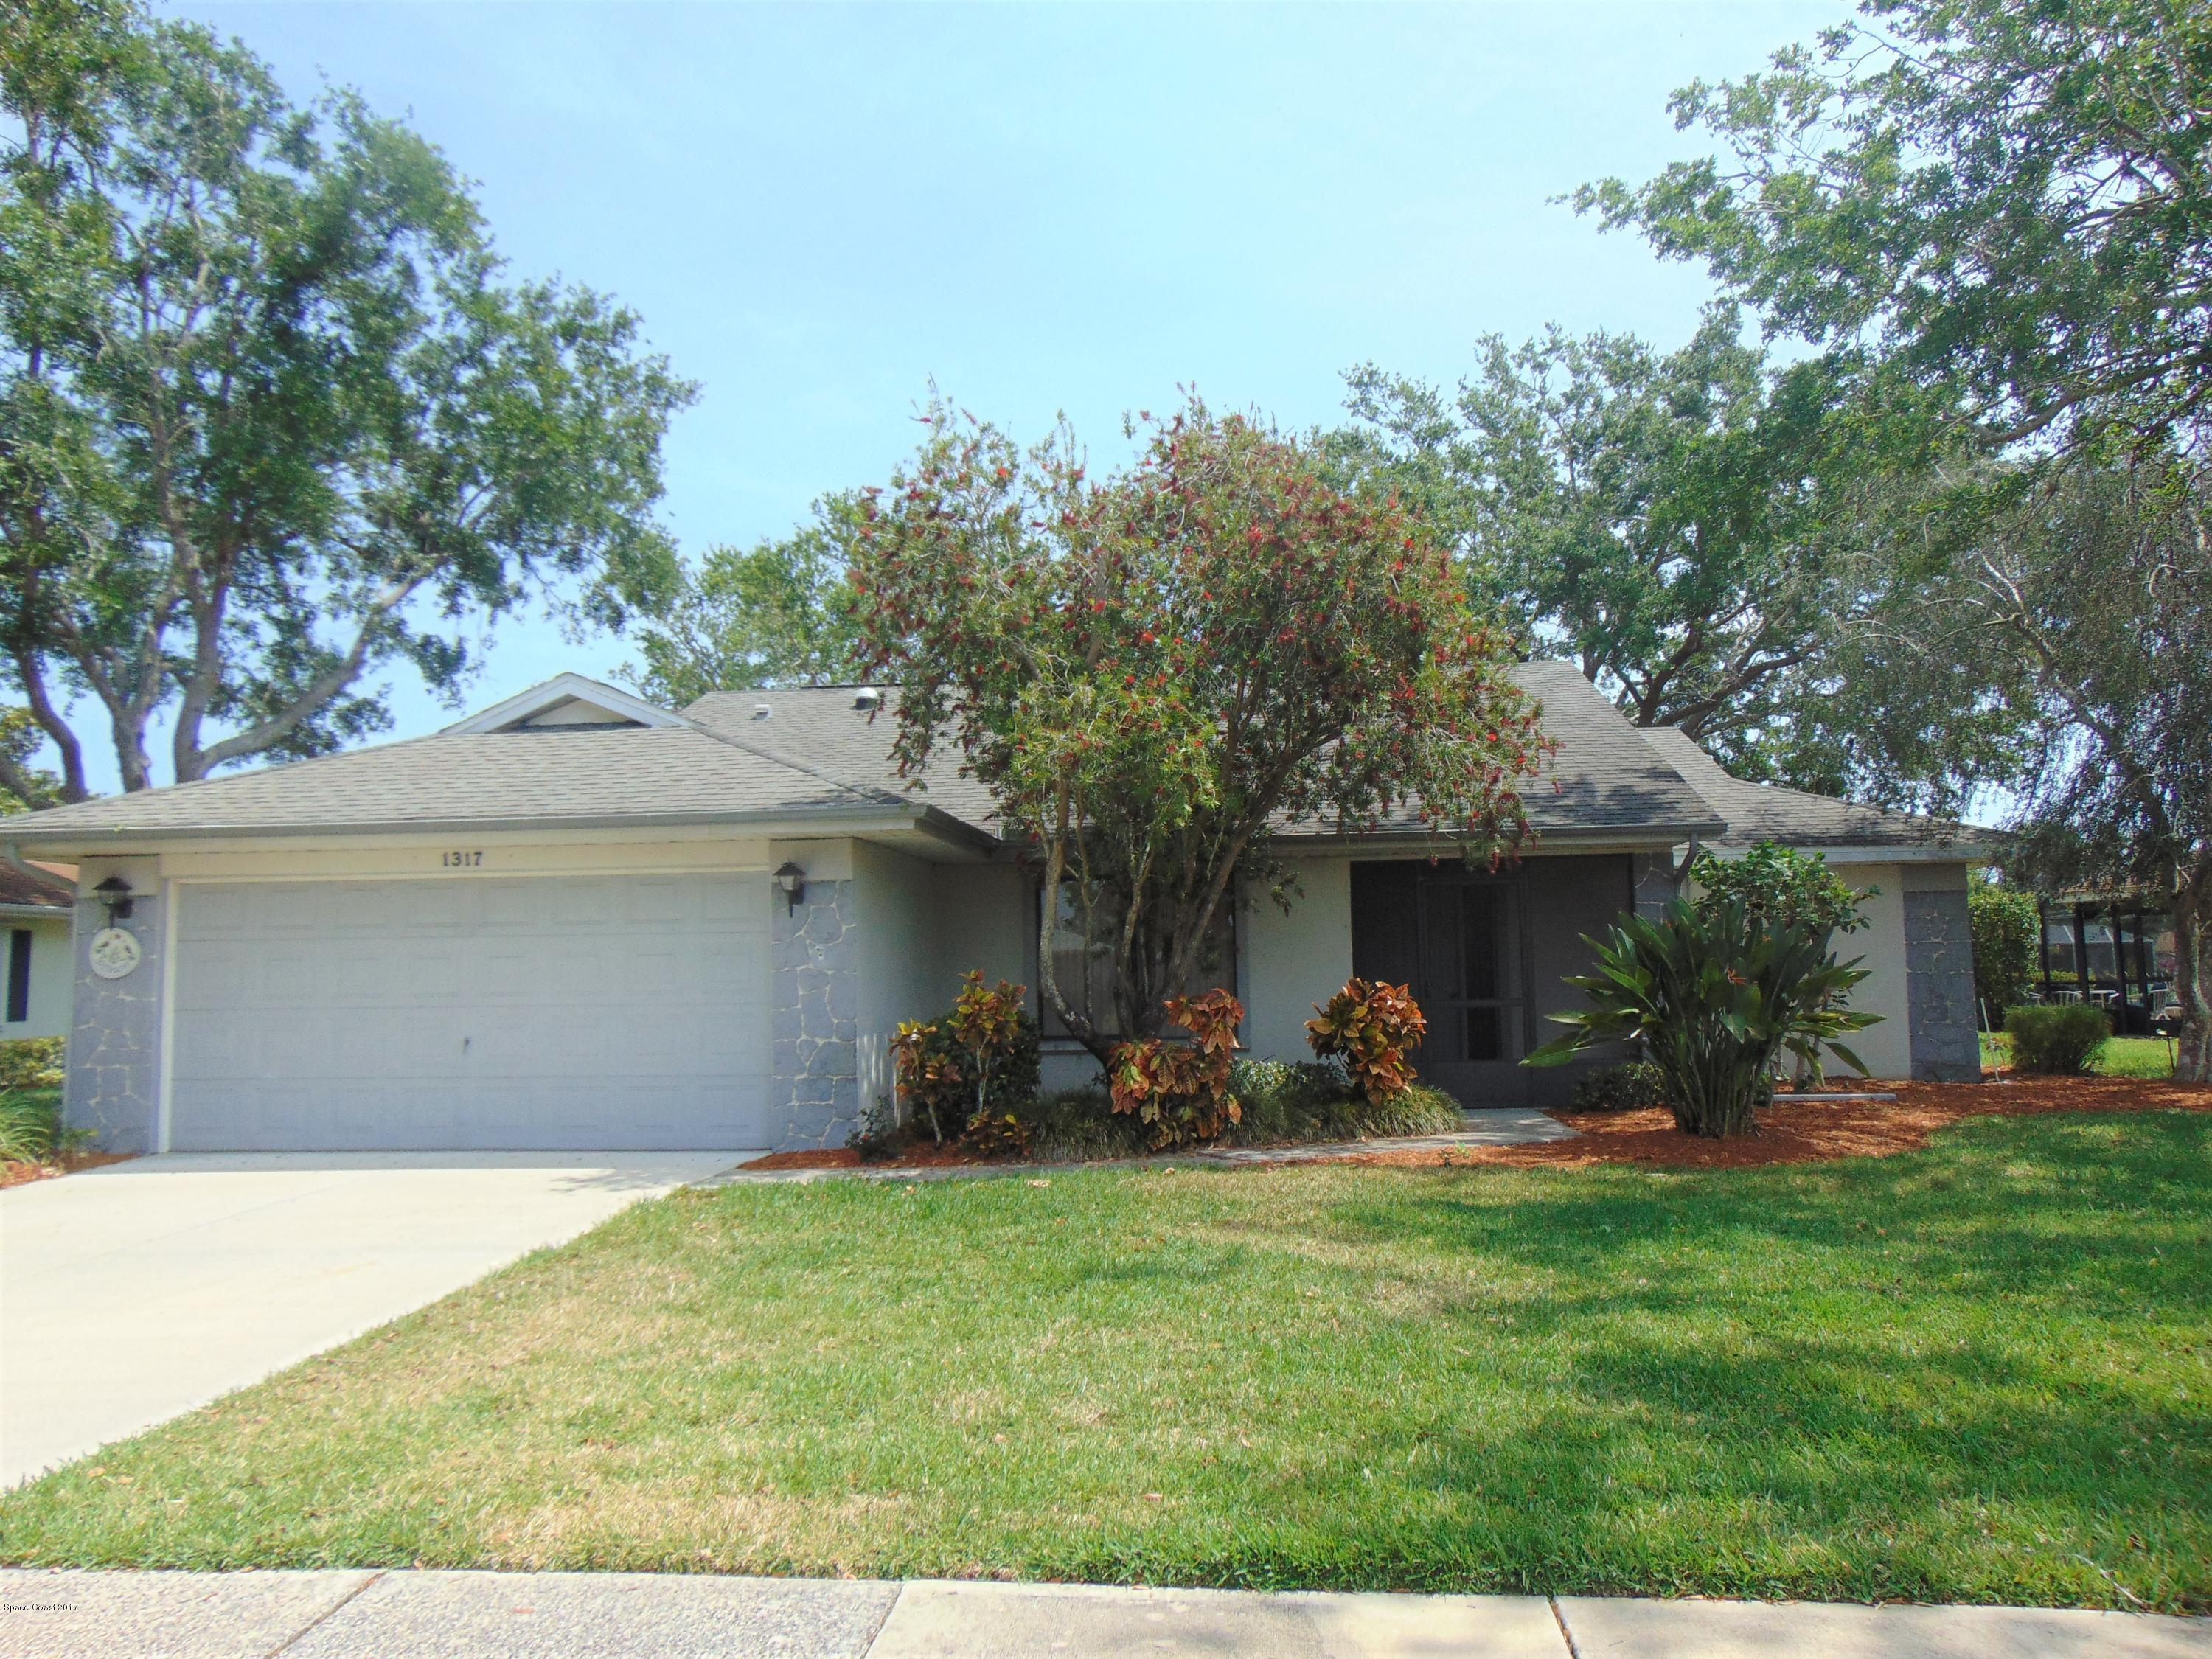 1317 Independence Avenue, Melbourne, Florida